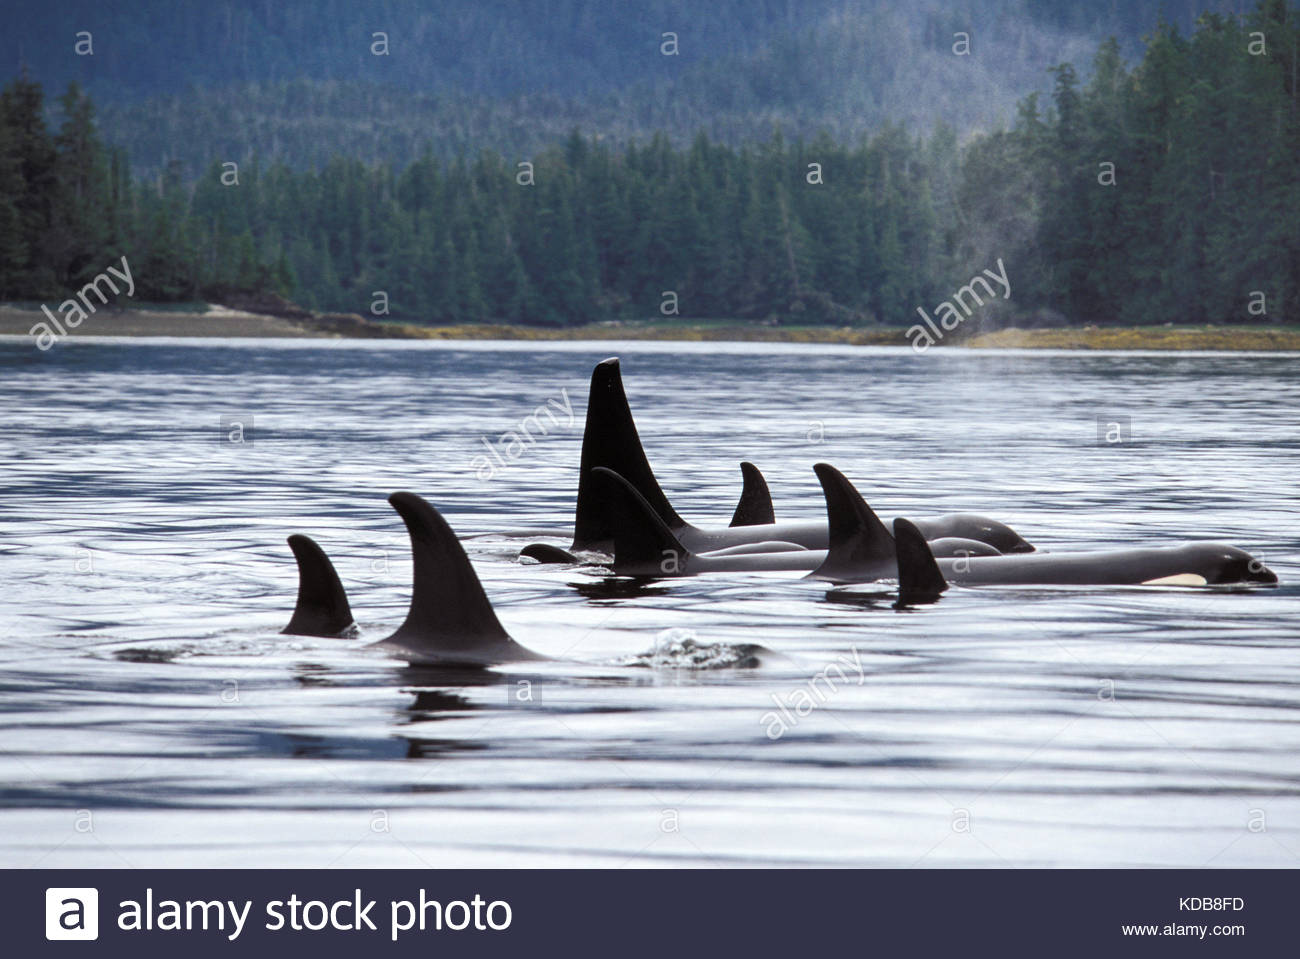 Orca whales, Orcinus orca, transiting through the Great Bear Sea. - Stock Image